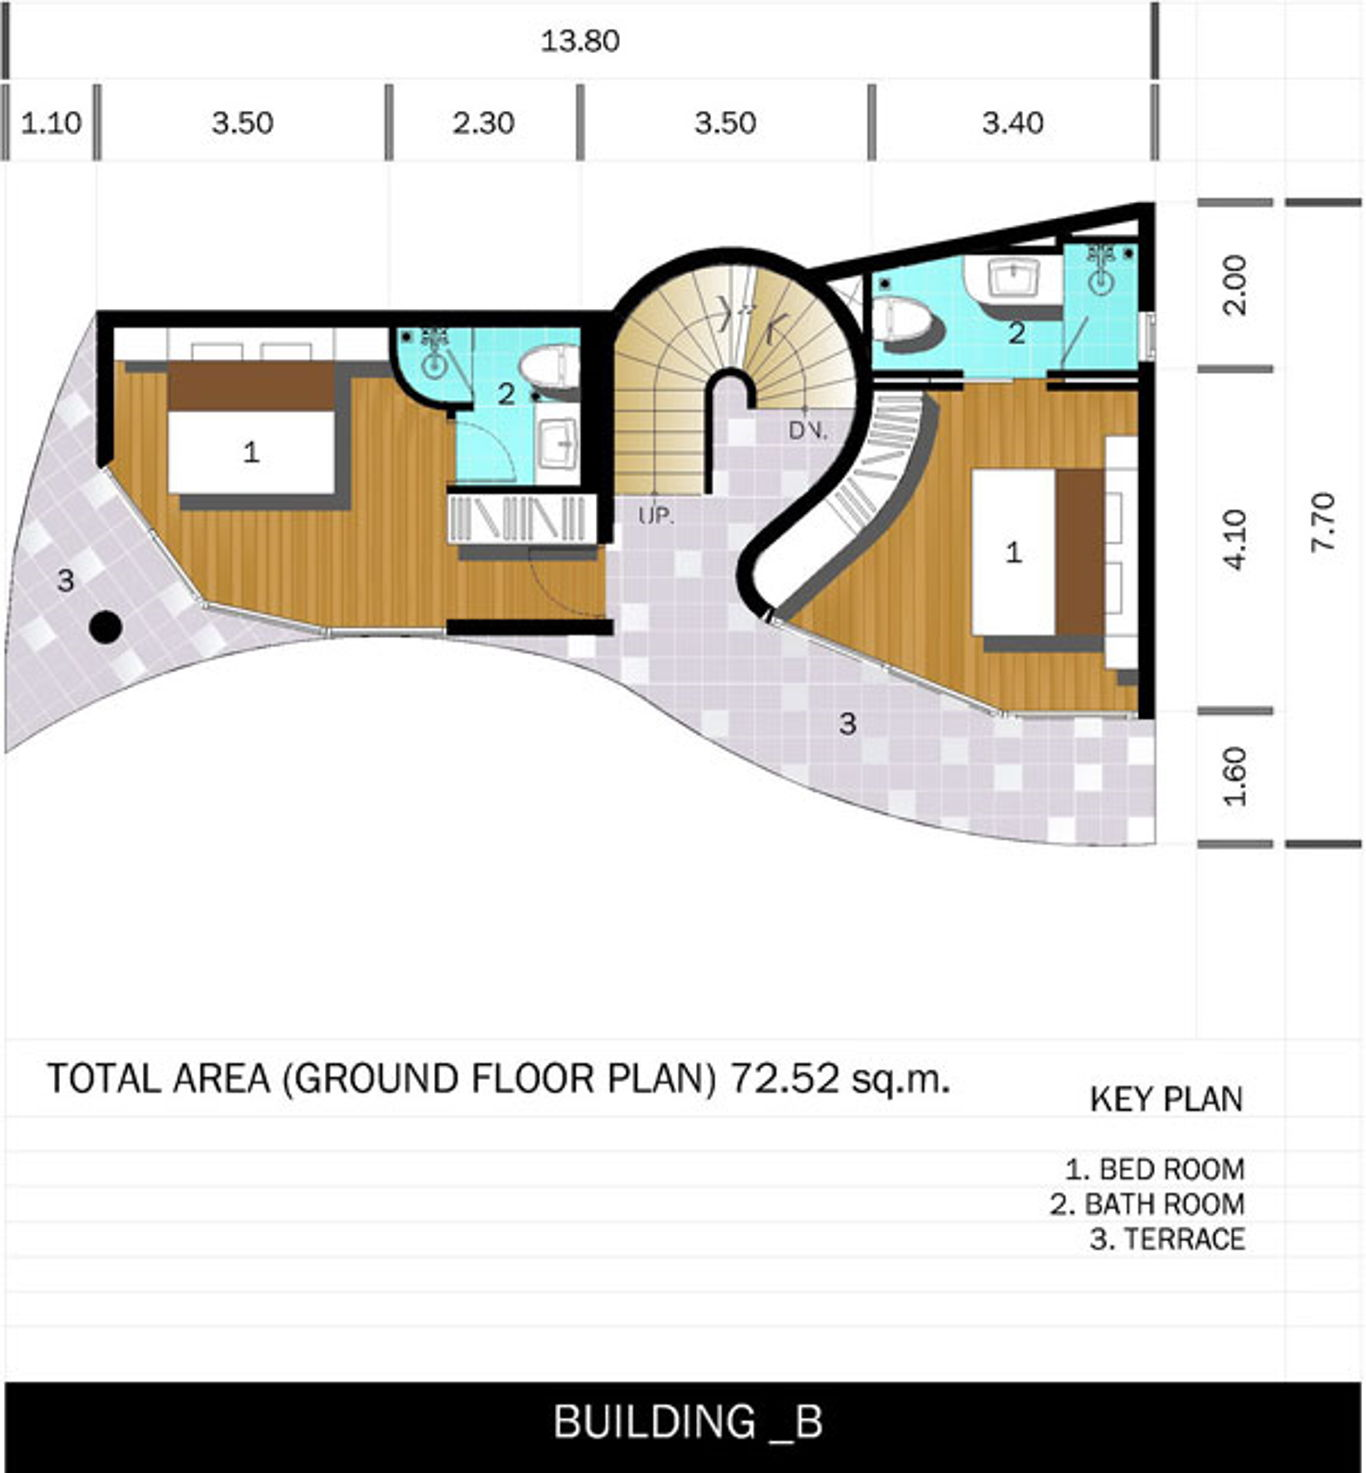 Phuket Holiday Services Villa Neptune Floor Plan 3